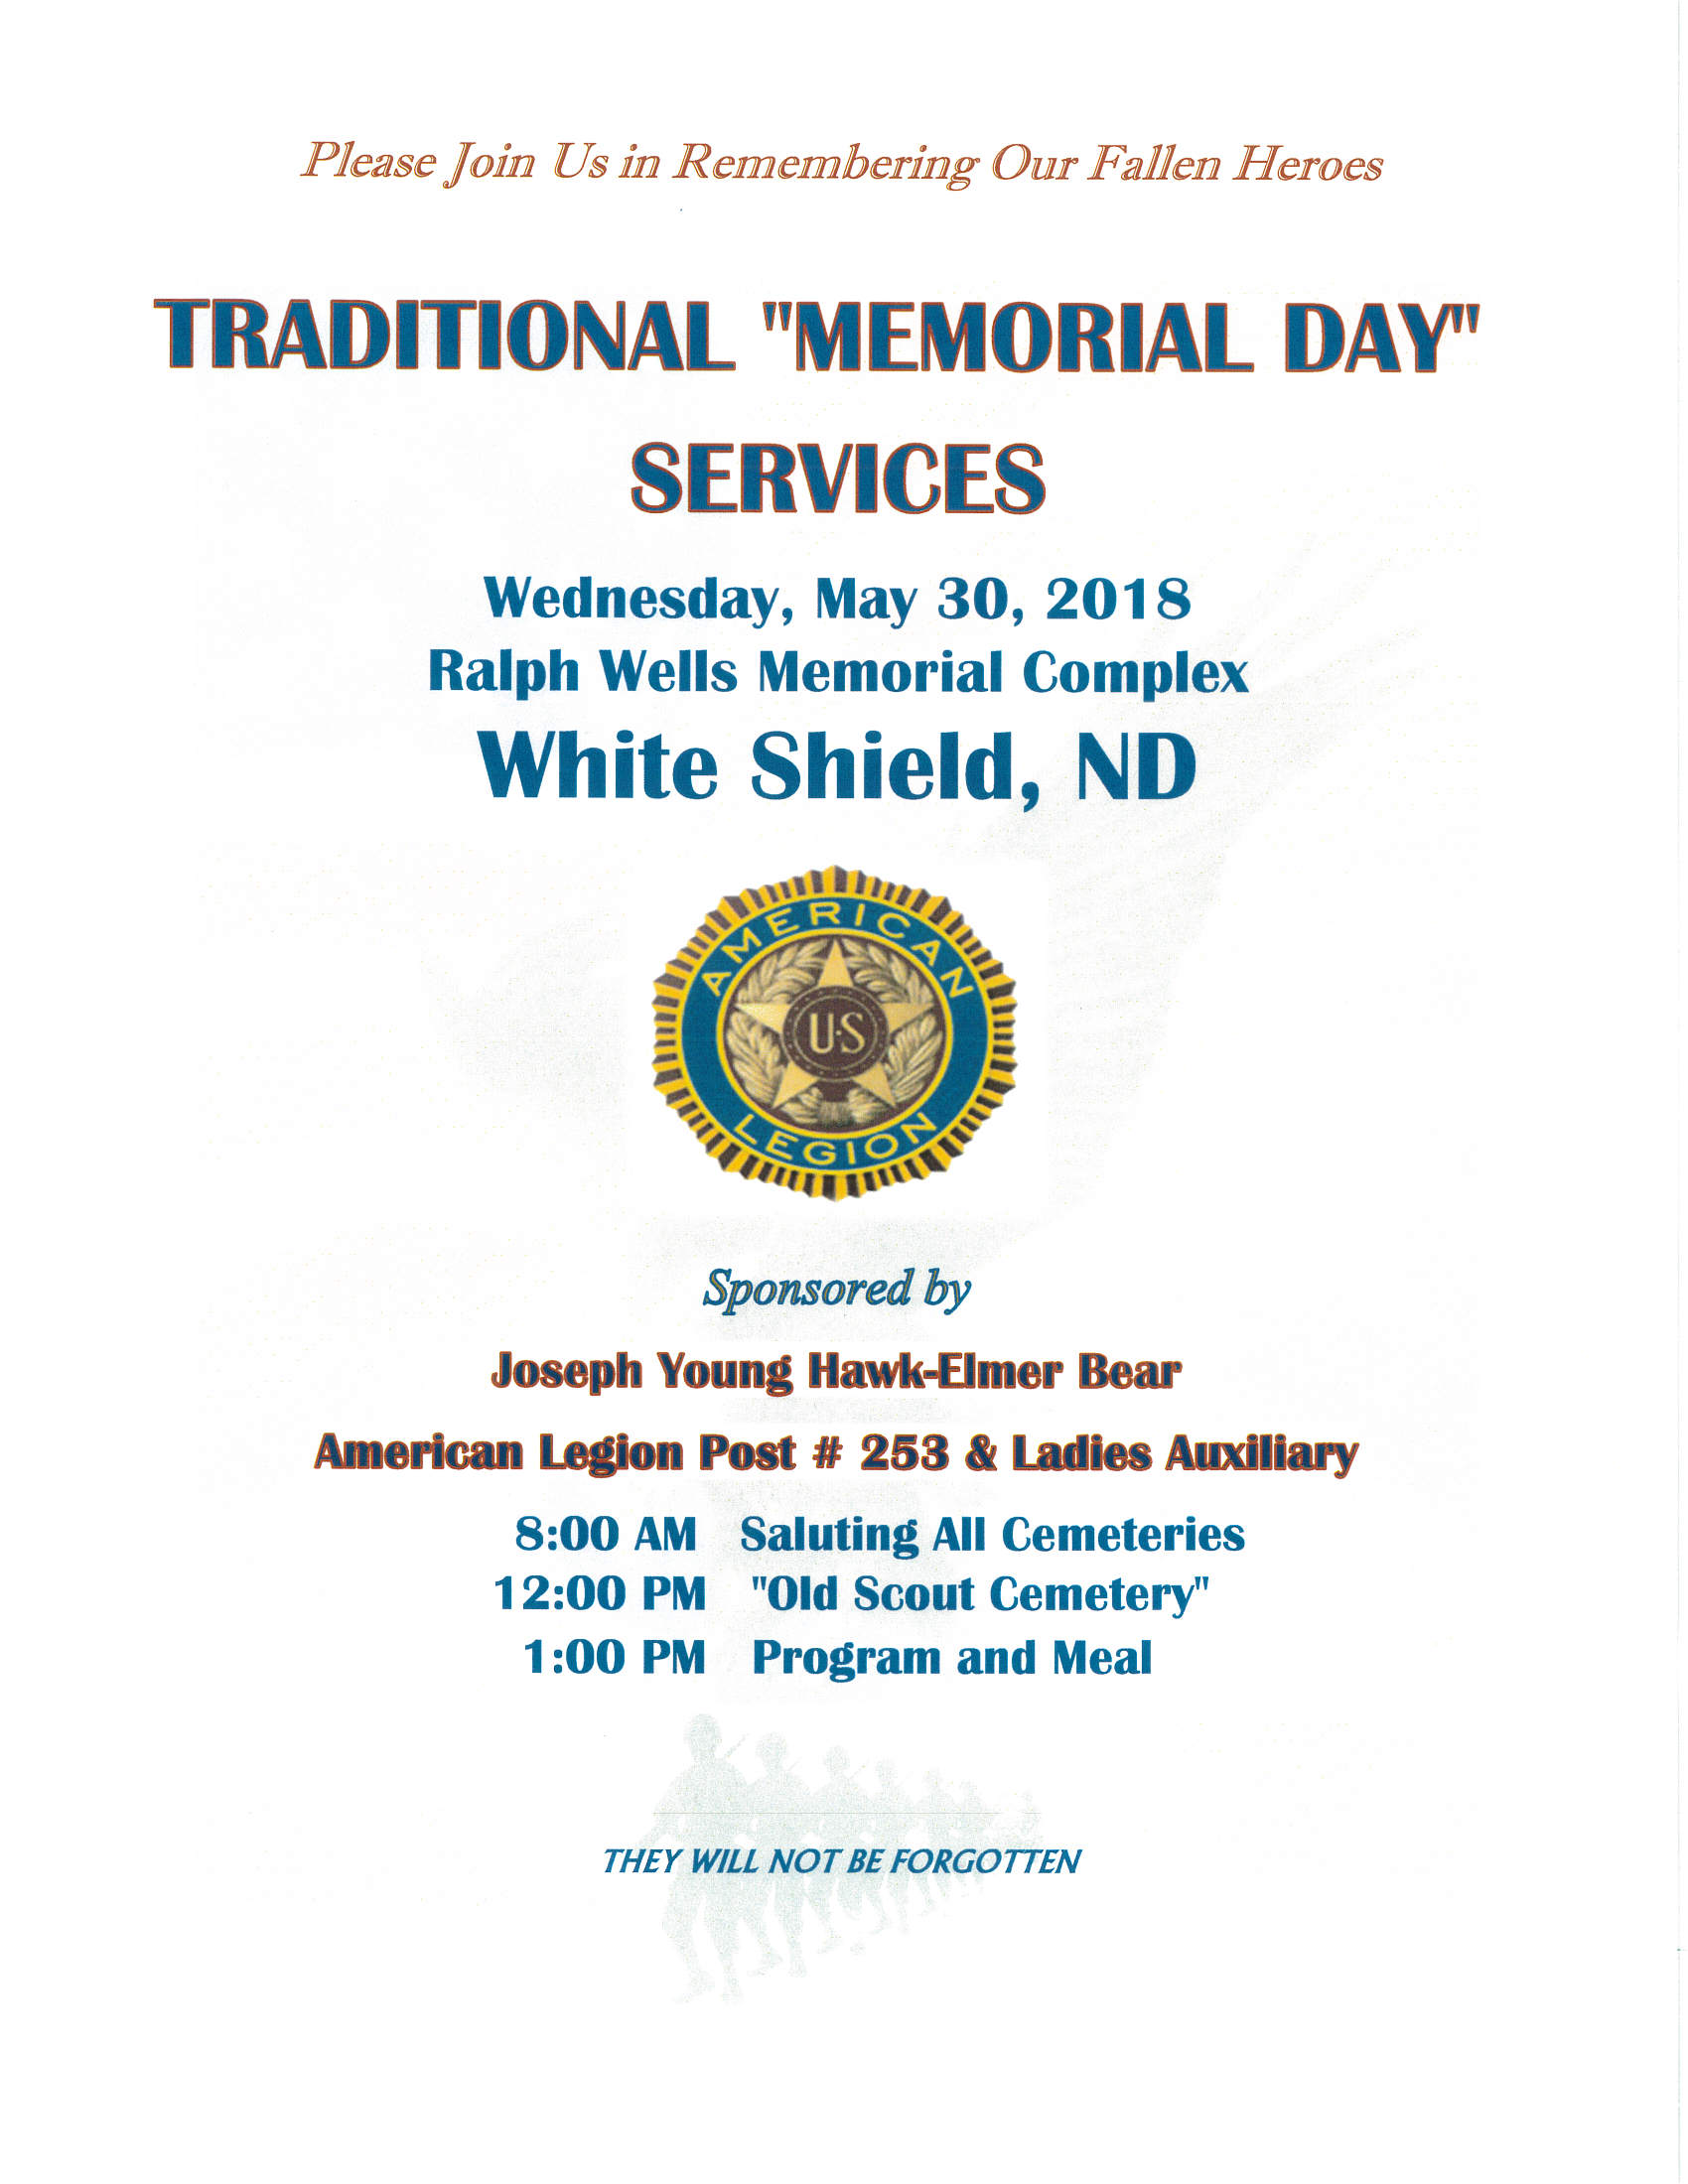 Traditional Memorial Day Services White Shield, ND.jpg